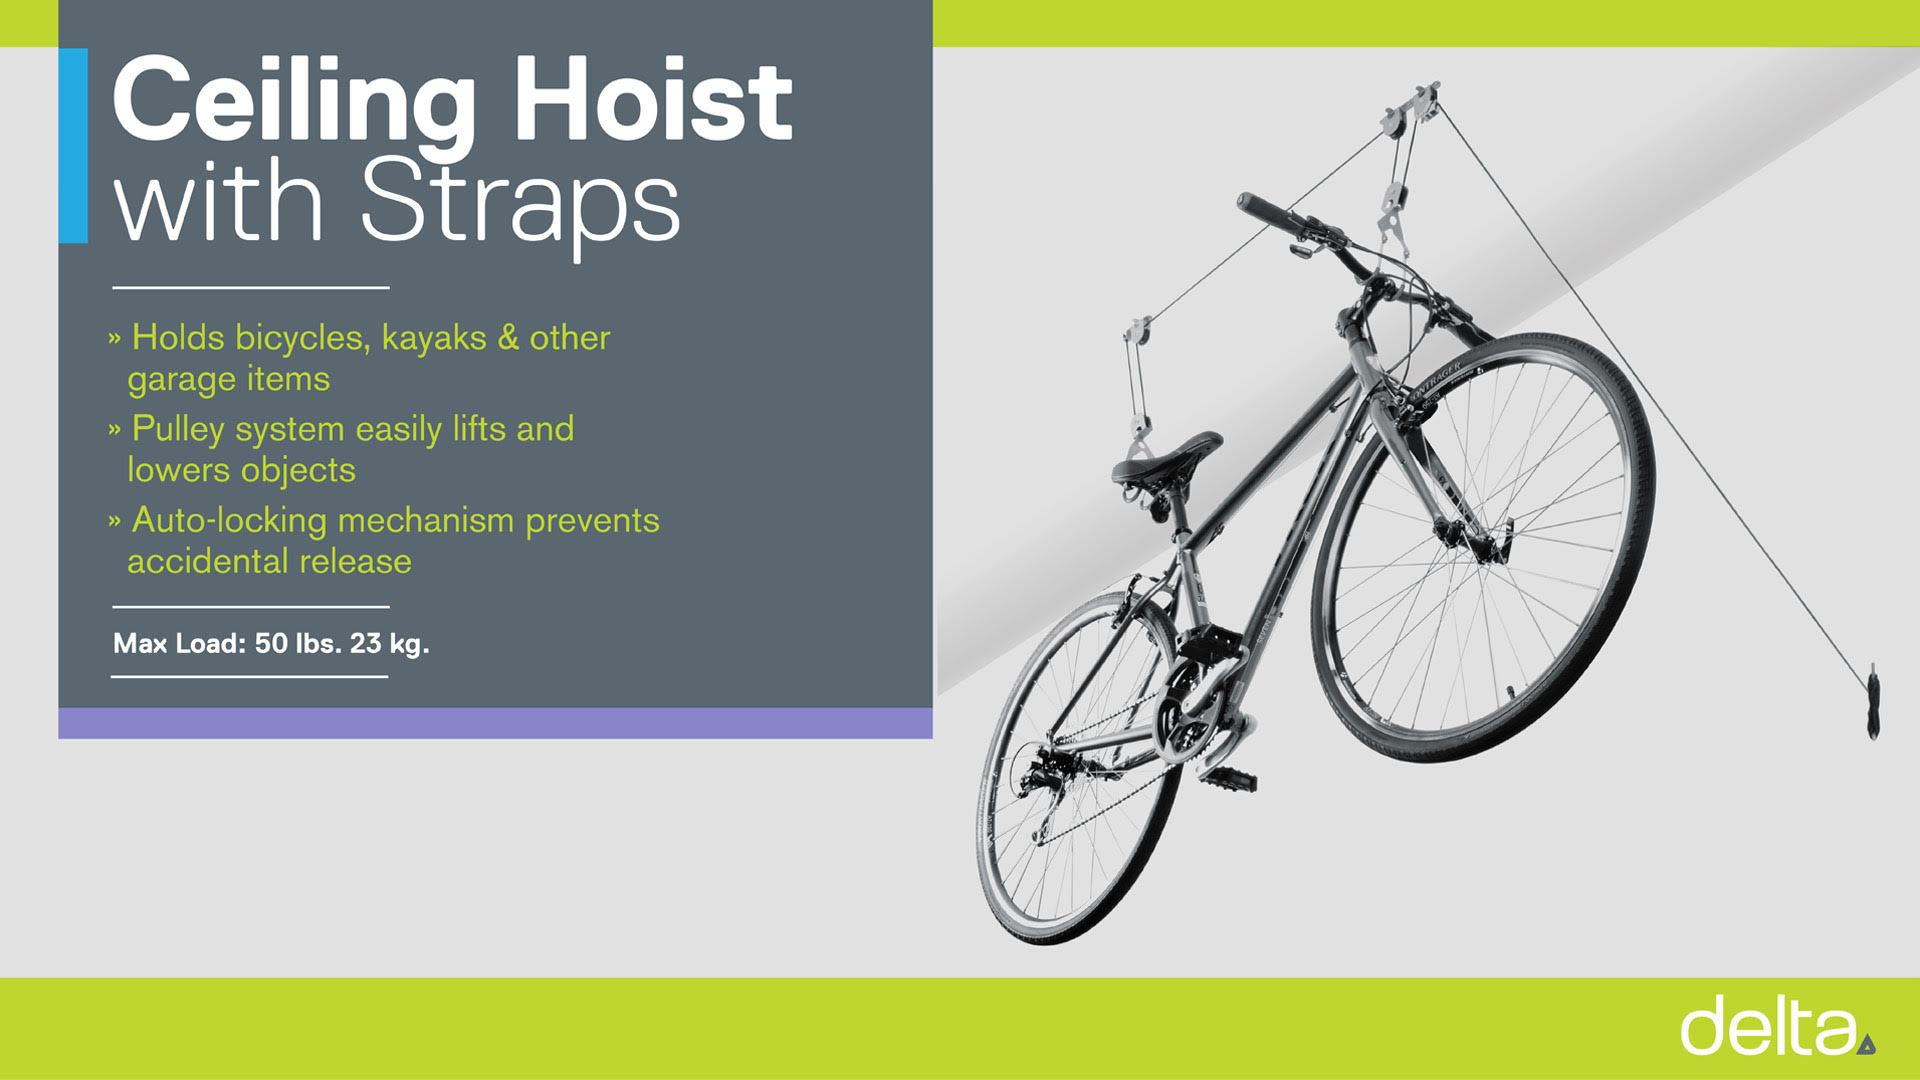 Single Bike Ceiling Hoist with Straps instructions